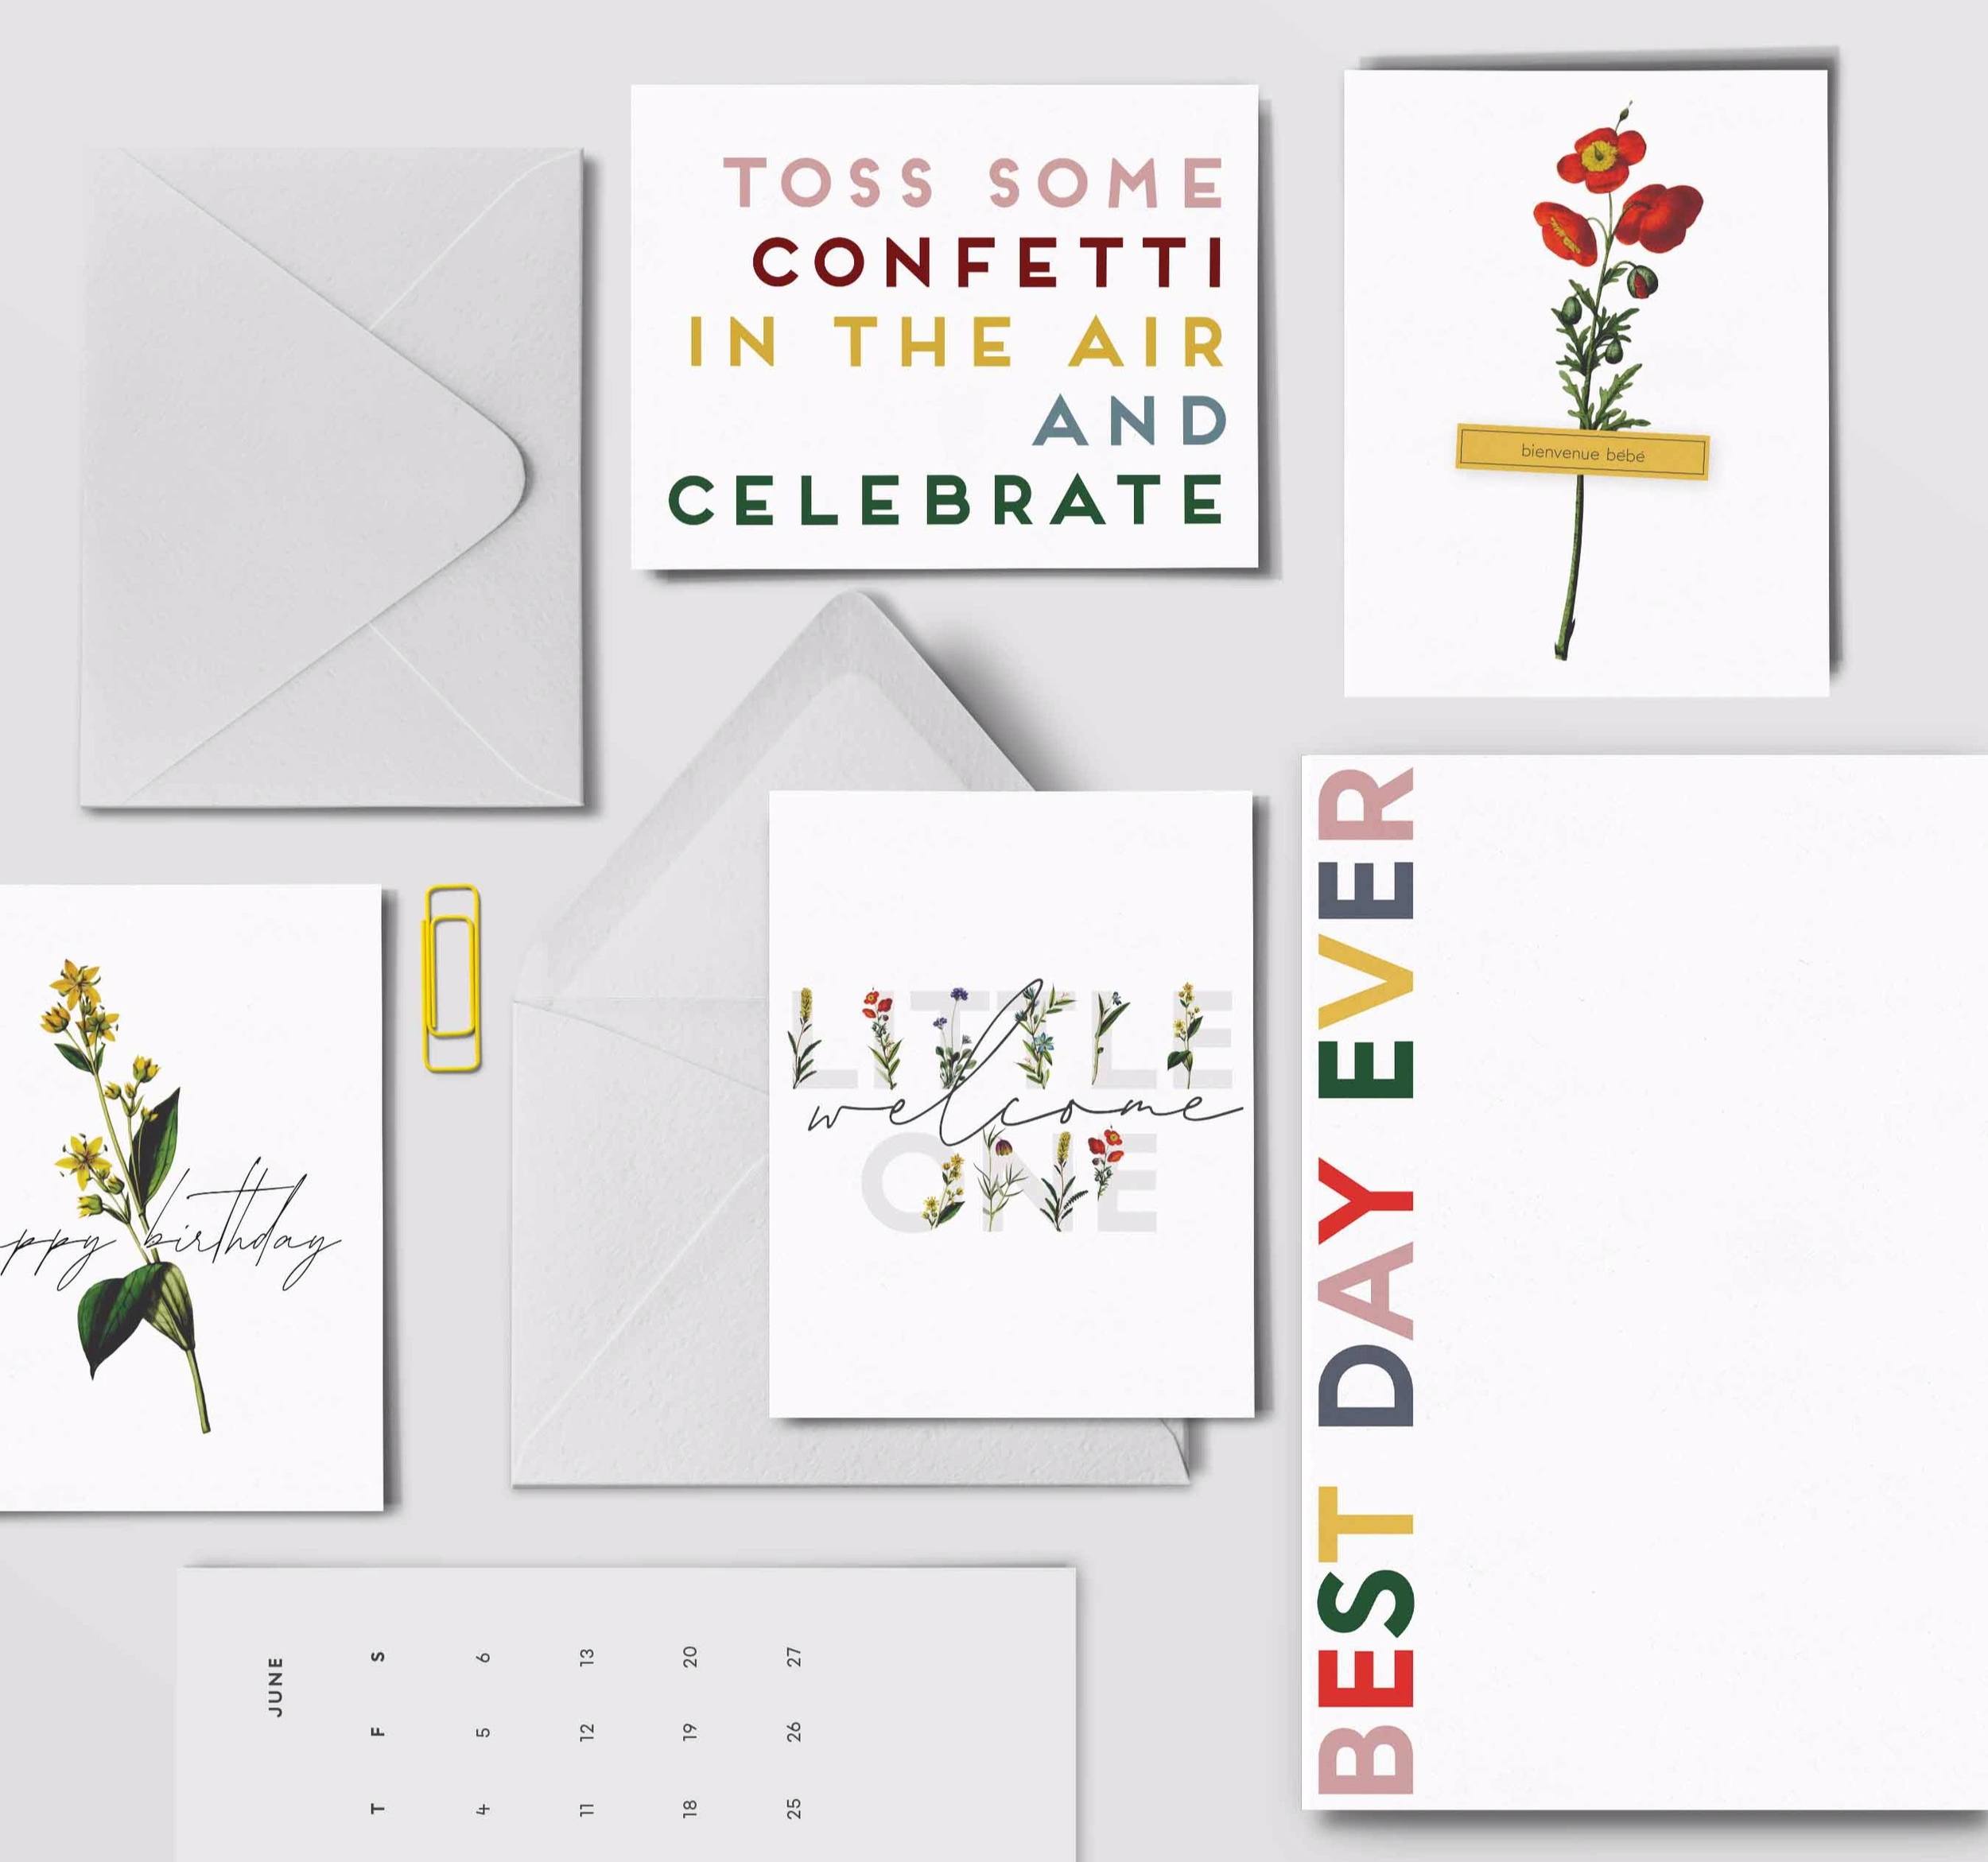 NOTEPADS & CALENDARS, OH MY! - Whether it's a gift for your best friend's wedding, a wall calendar with every color imaginable, or a weekly planner to keep you on schedule. We've got you covered!